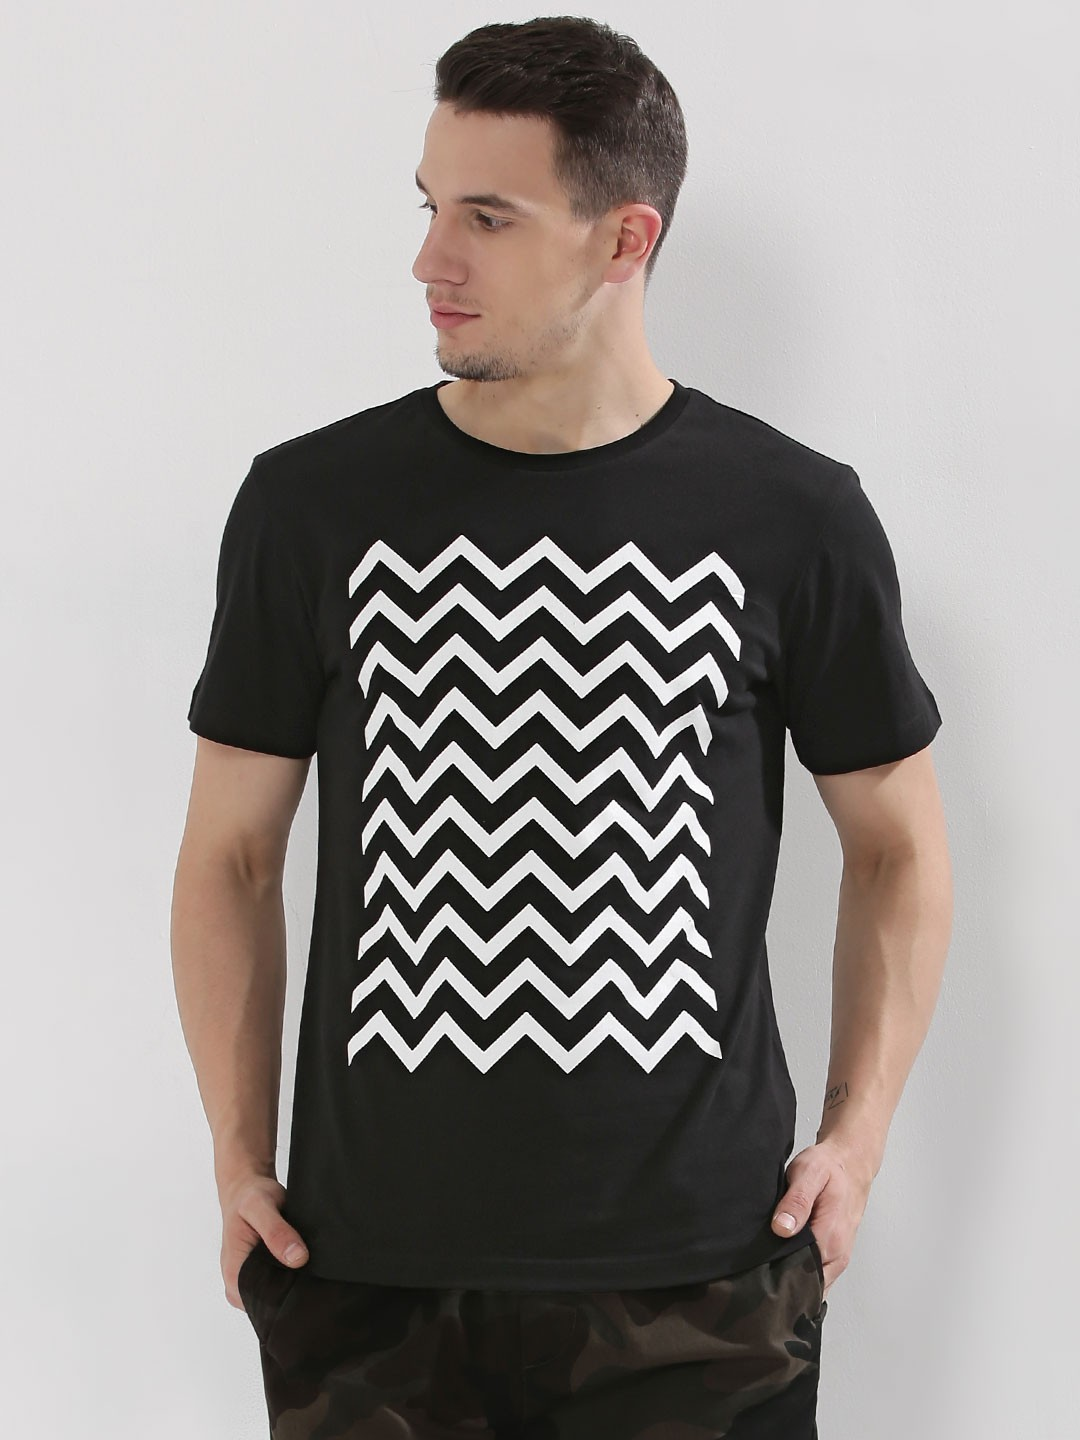 Black t shirt style - Koovs Chevron Print T Shirt In The Style Of Dan Smith